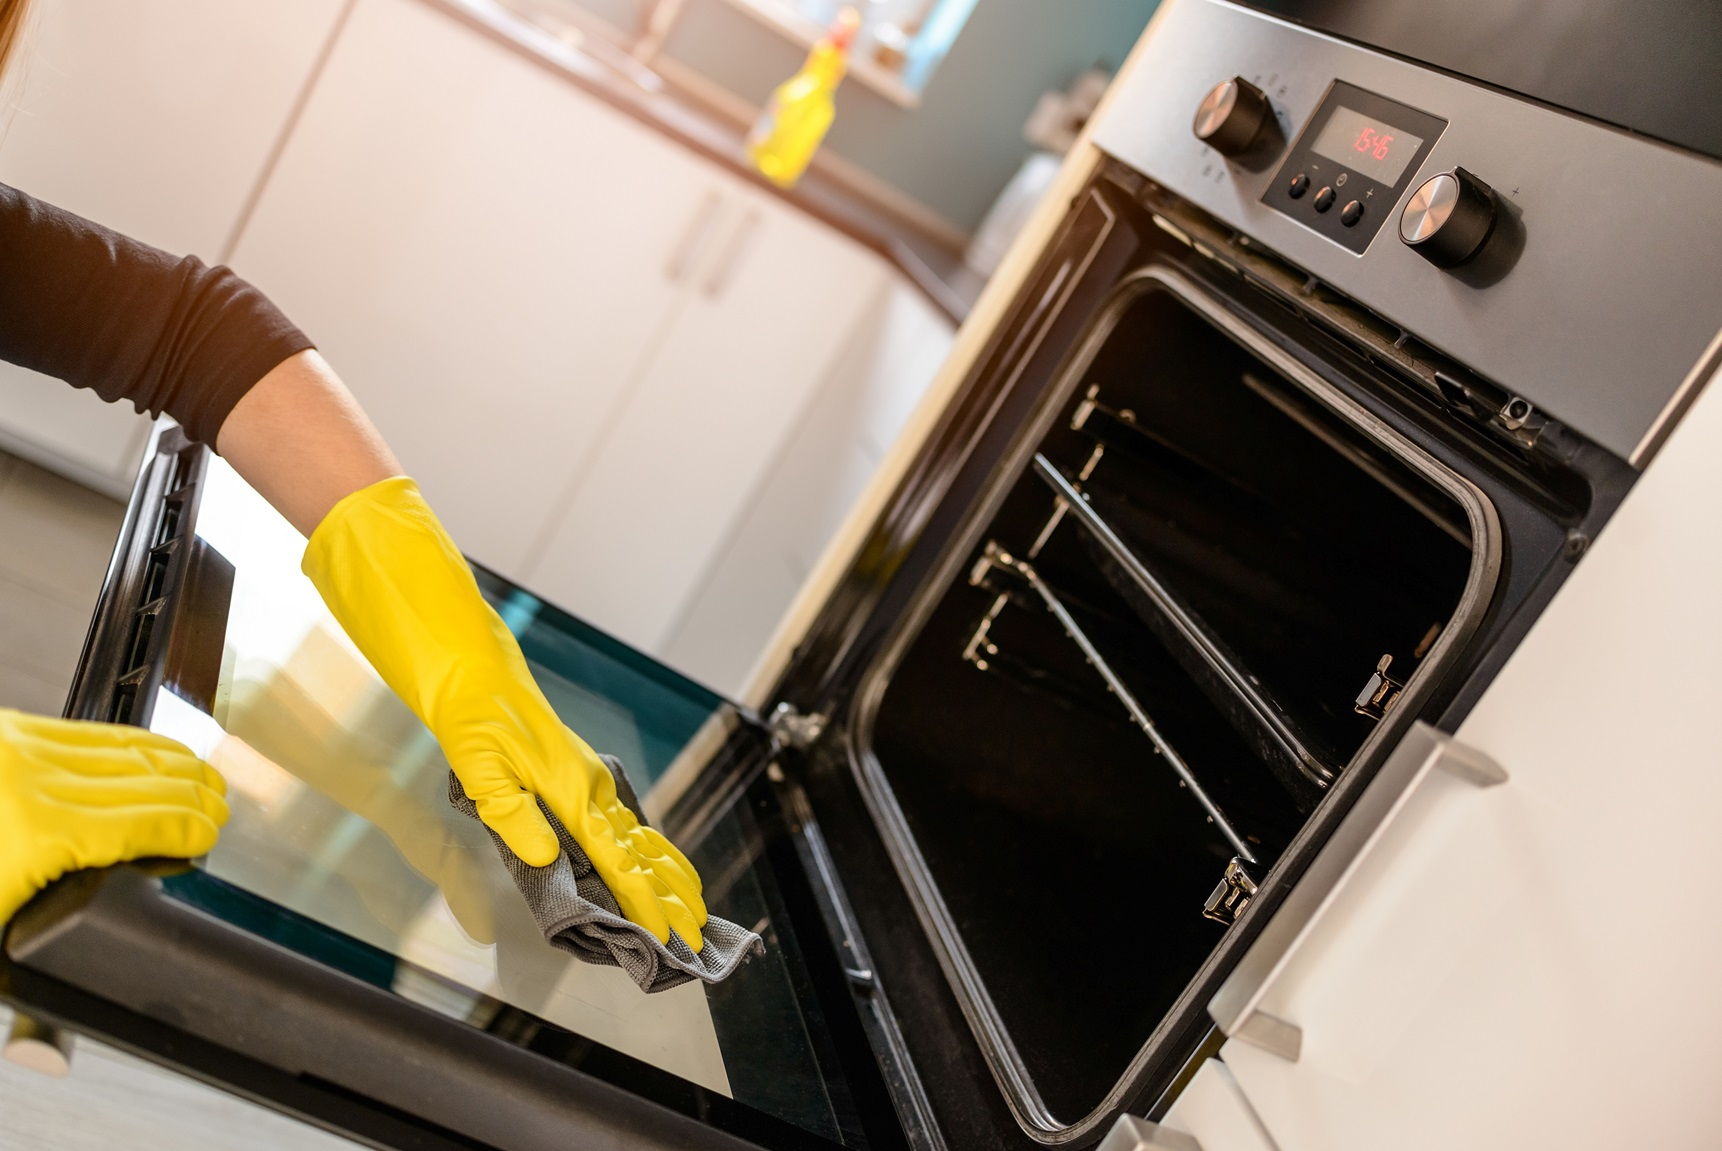 Homemade Oven Cleaner: Clean your oven with baking soda and vinegar